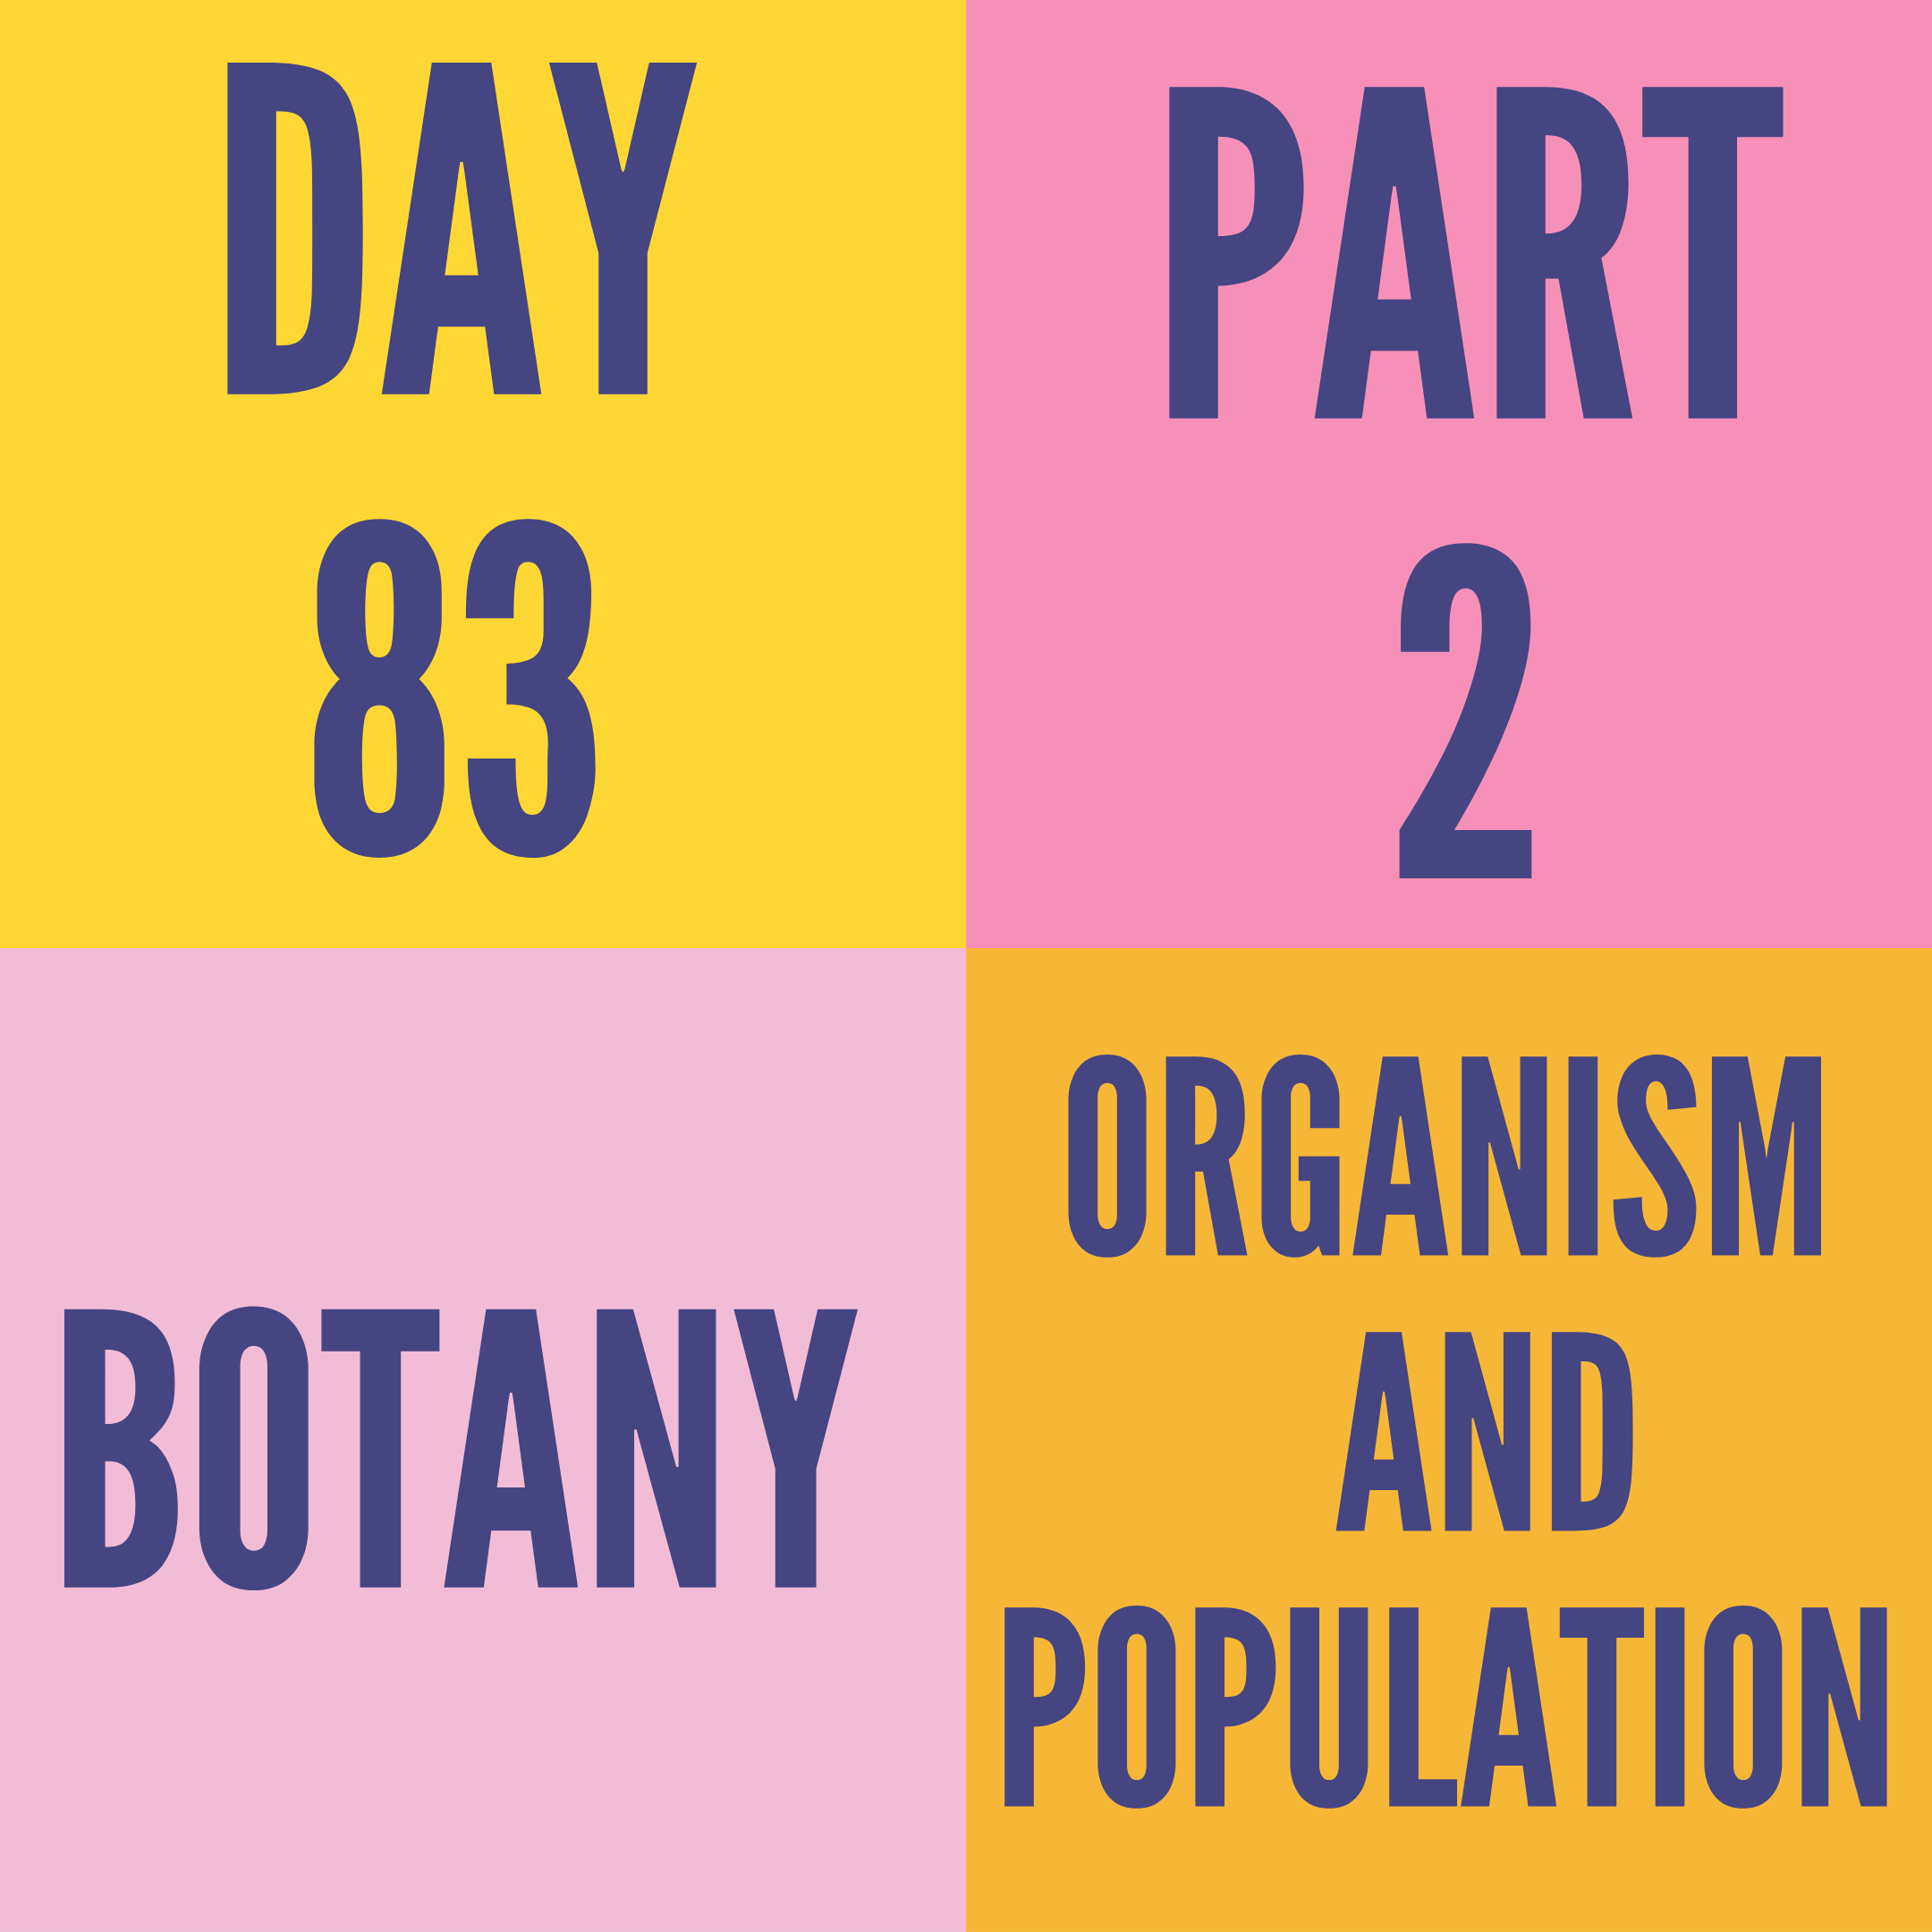 DAY-83 PART-2 ORGANISM AND POPULATION